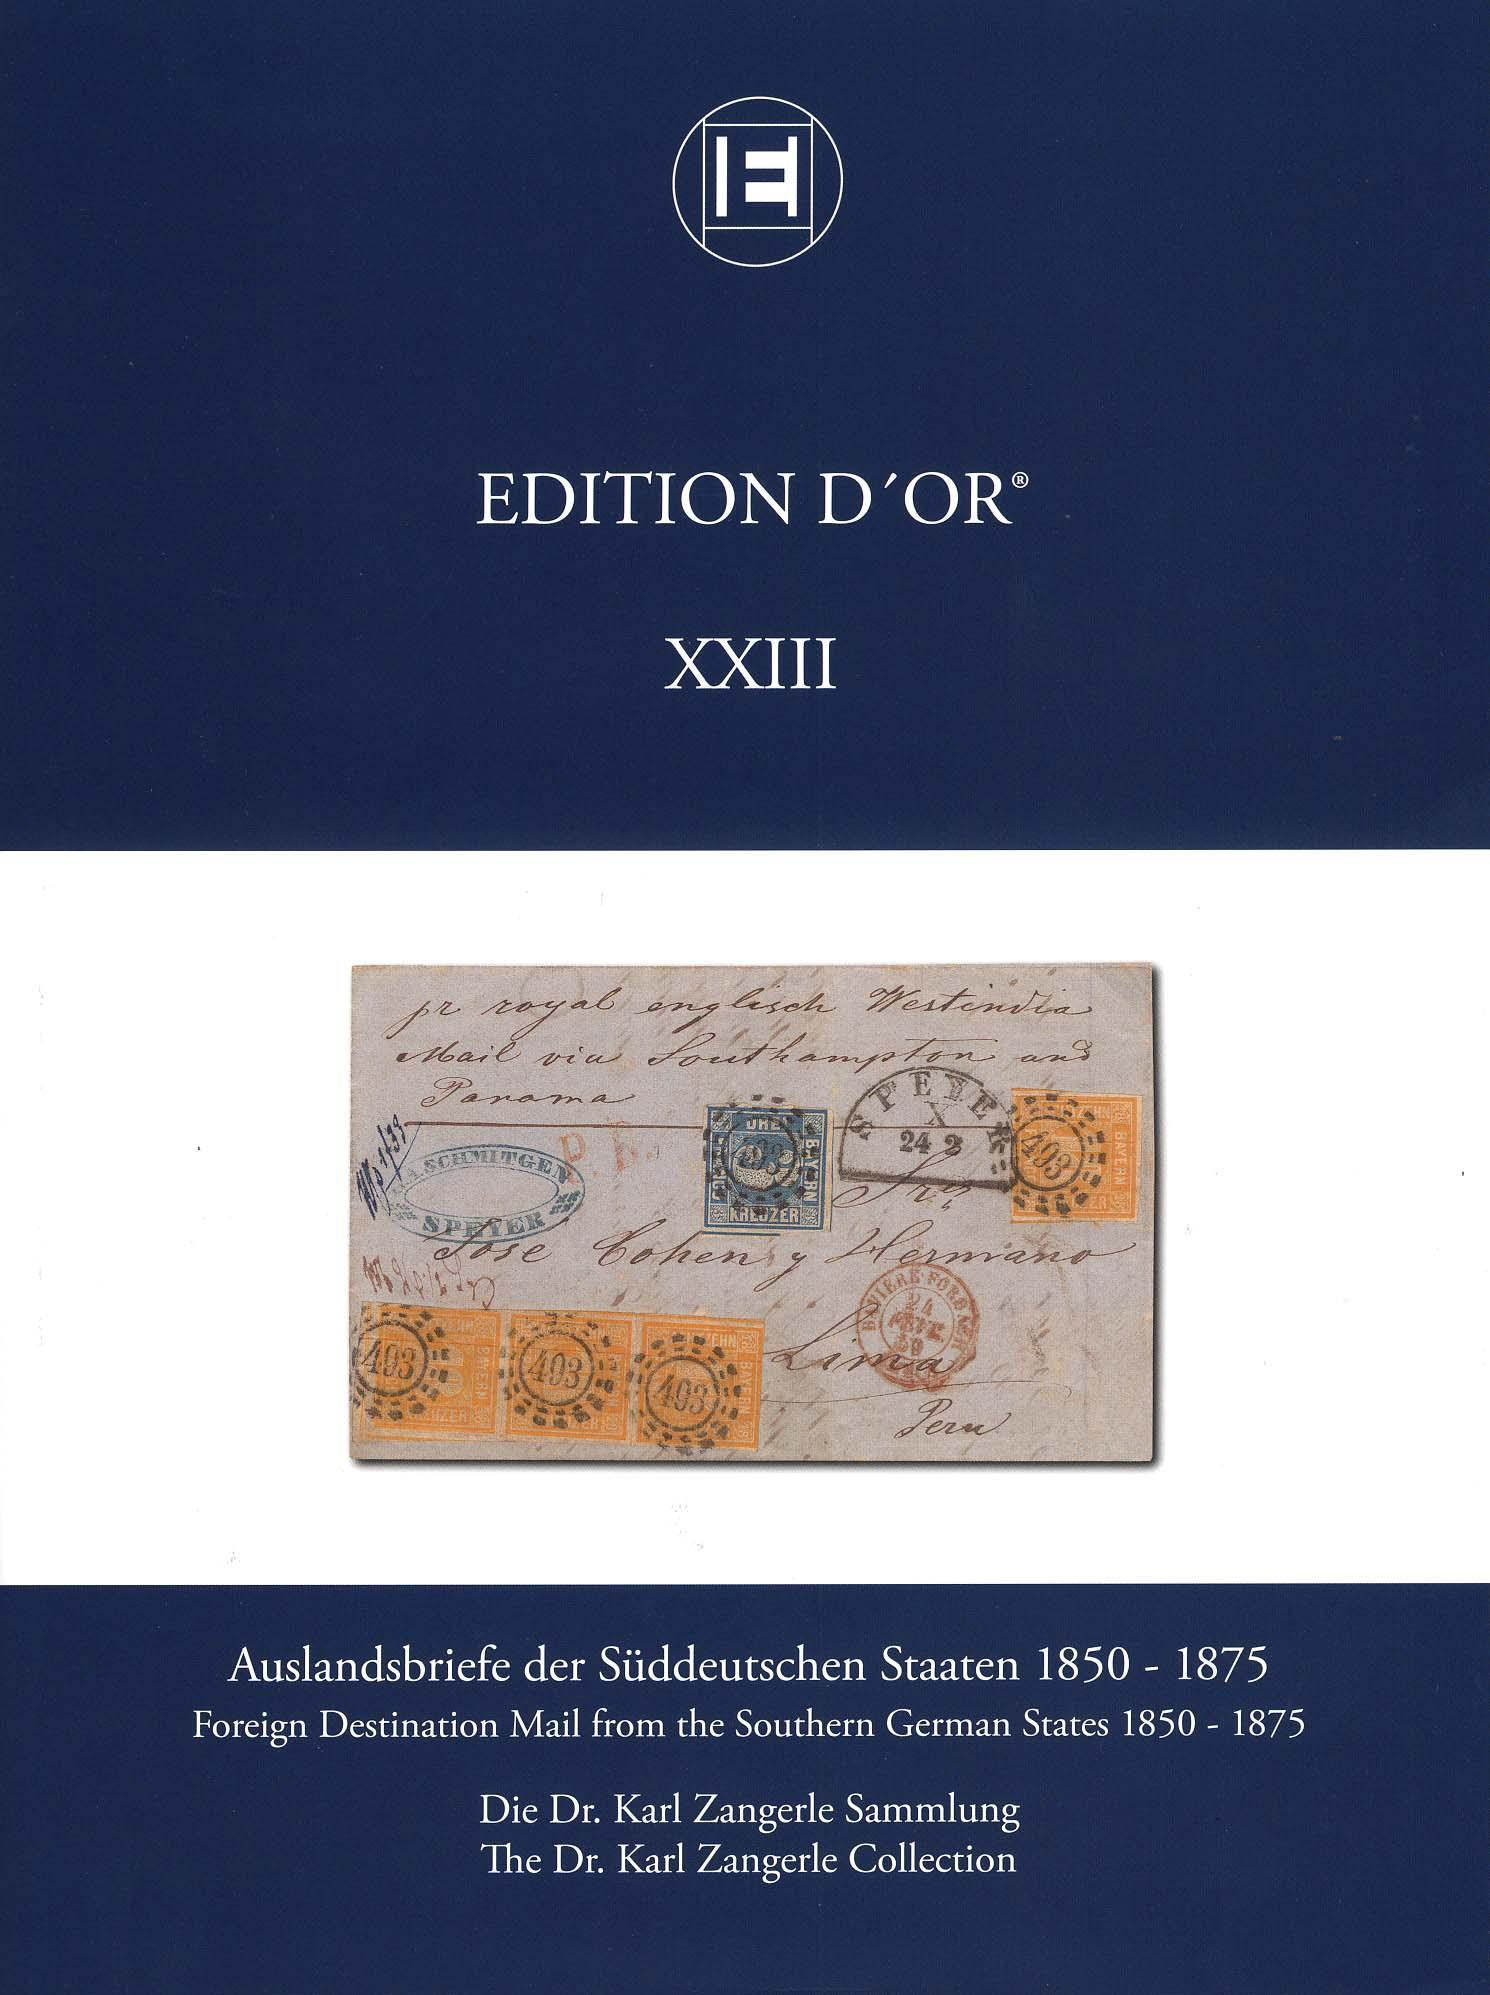 Vol. 23: Foreign Destination Mail from the Southern German States 1850-1875 • The Dr. Karl Zangerle Collection